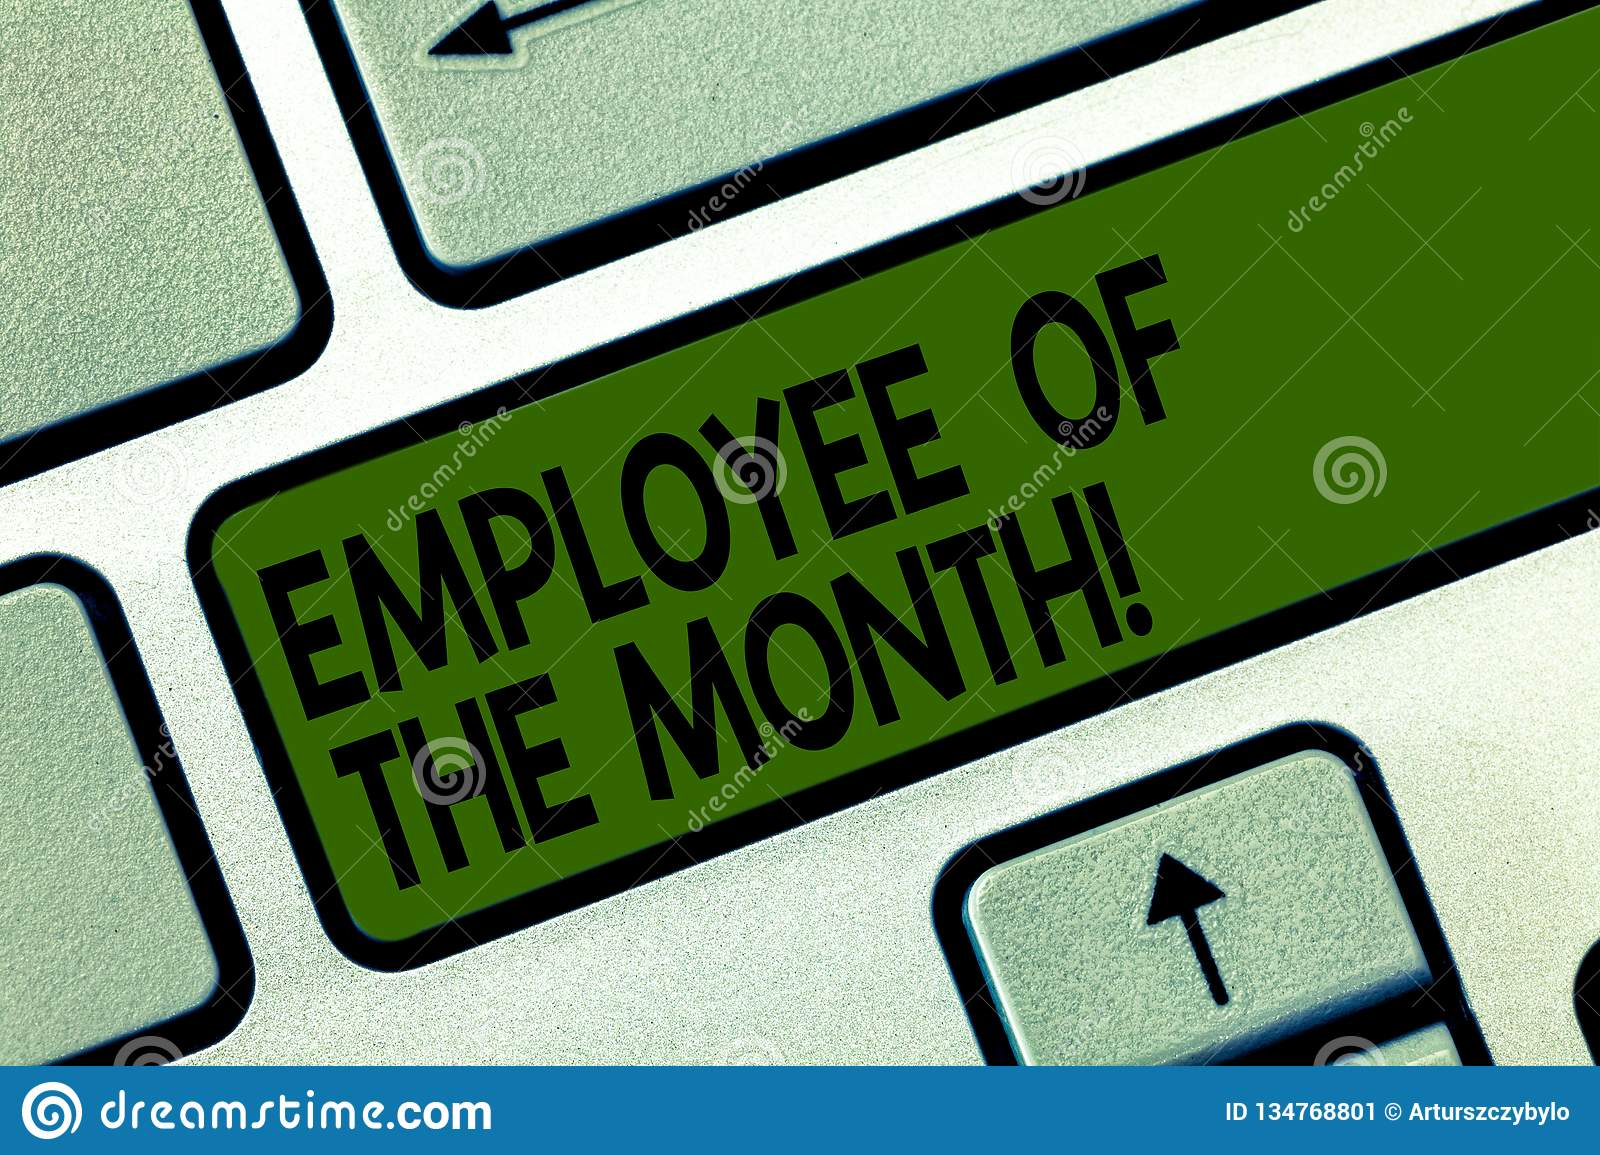 Writing Note Showing Employee Of The Month Business Photo